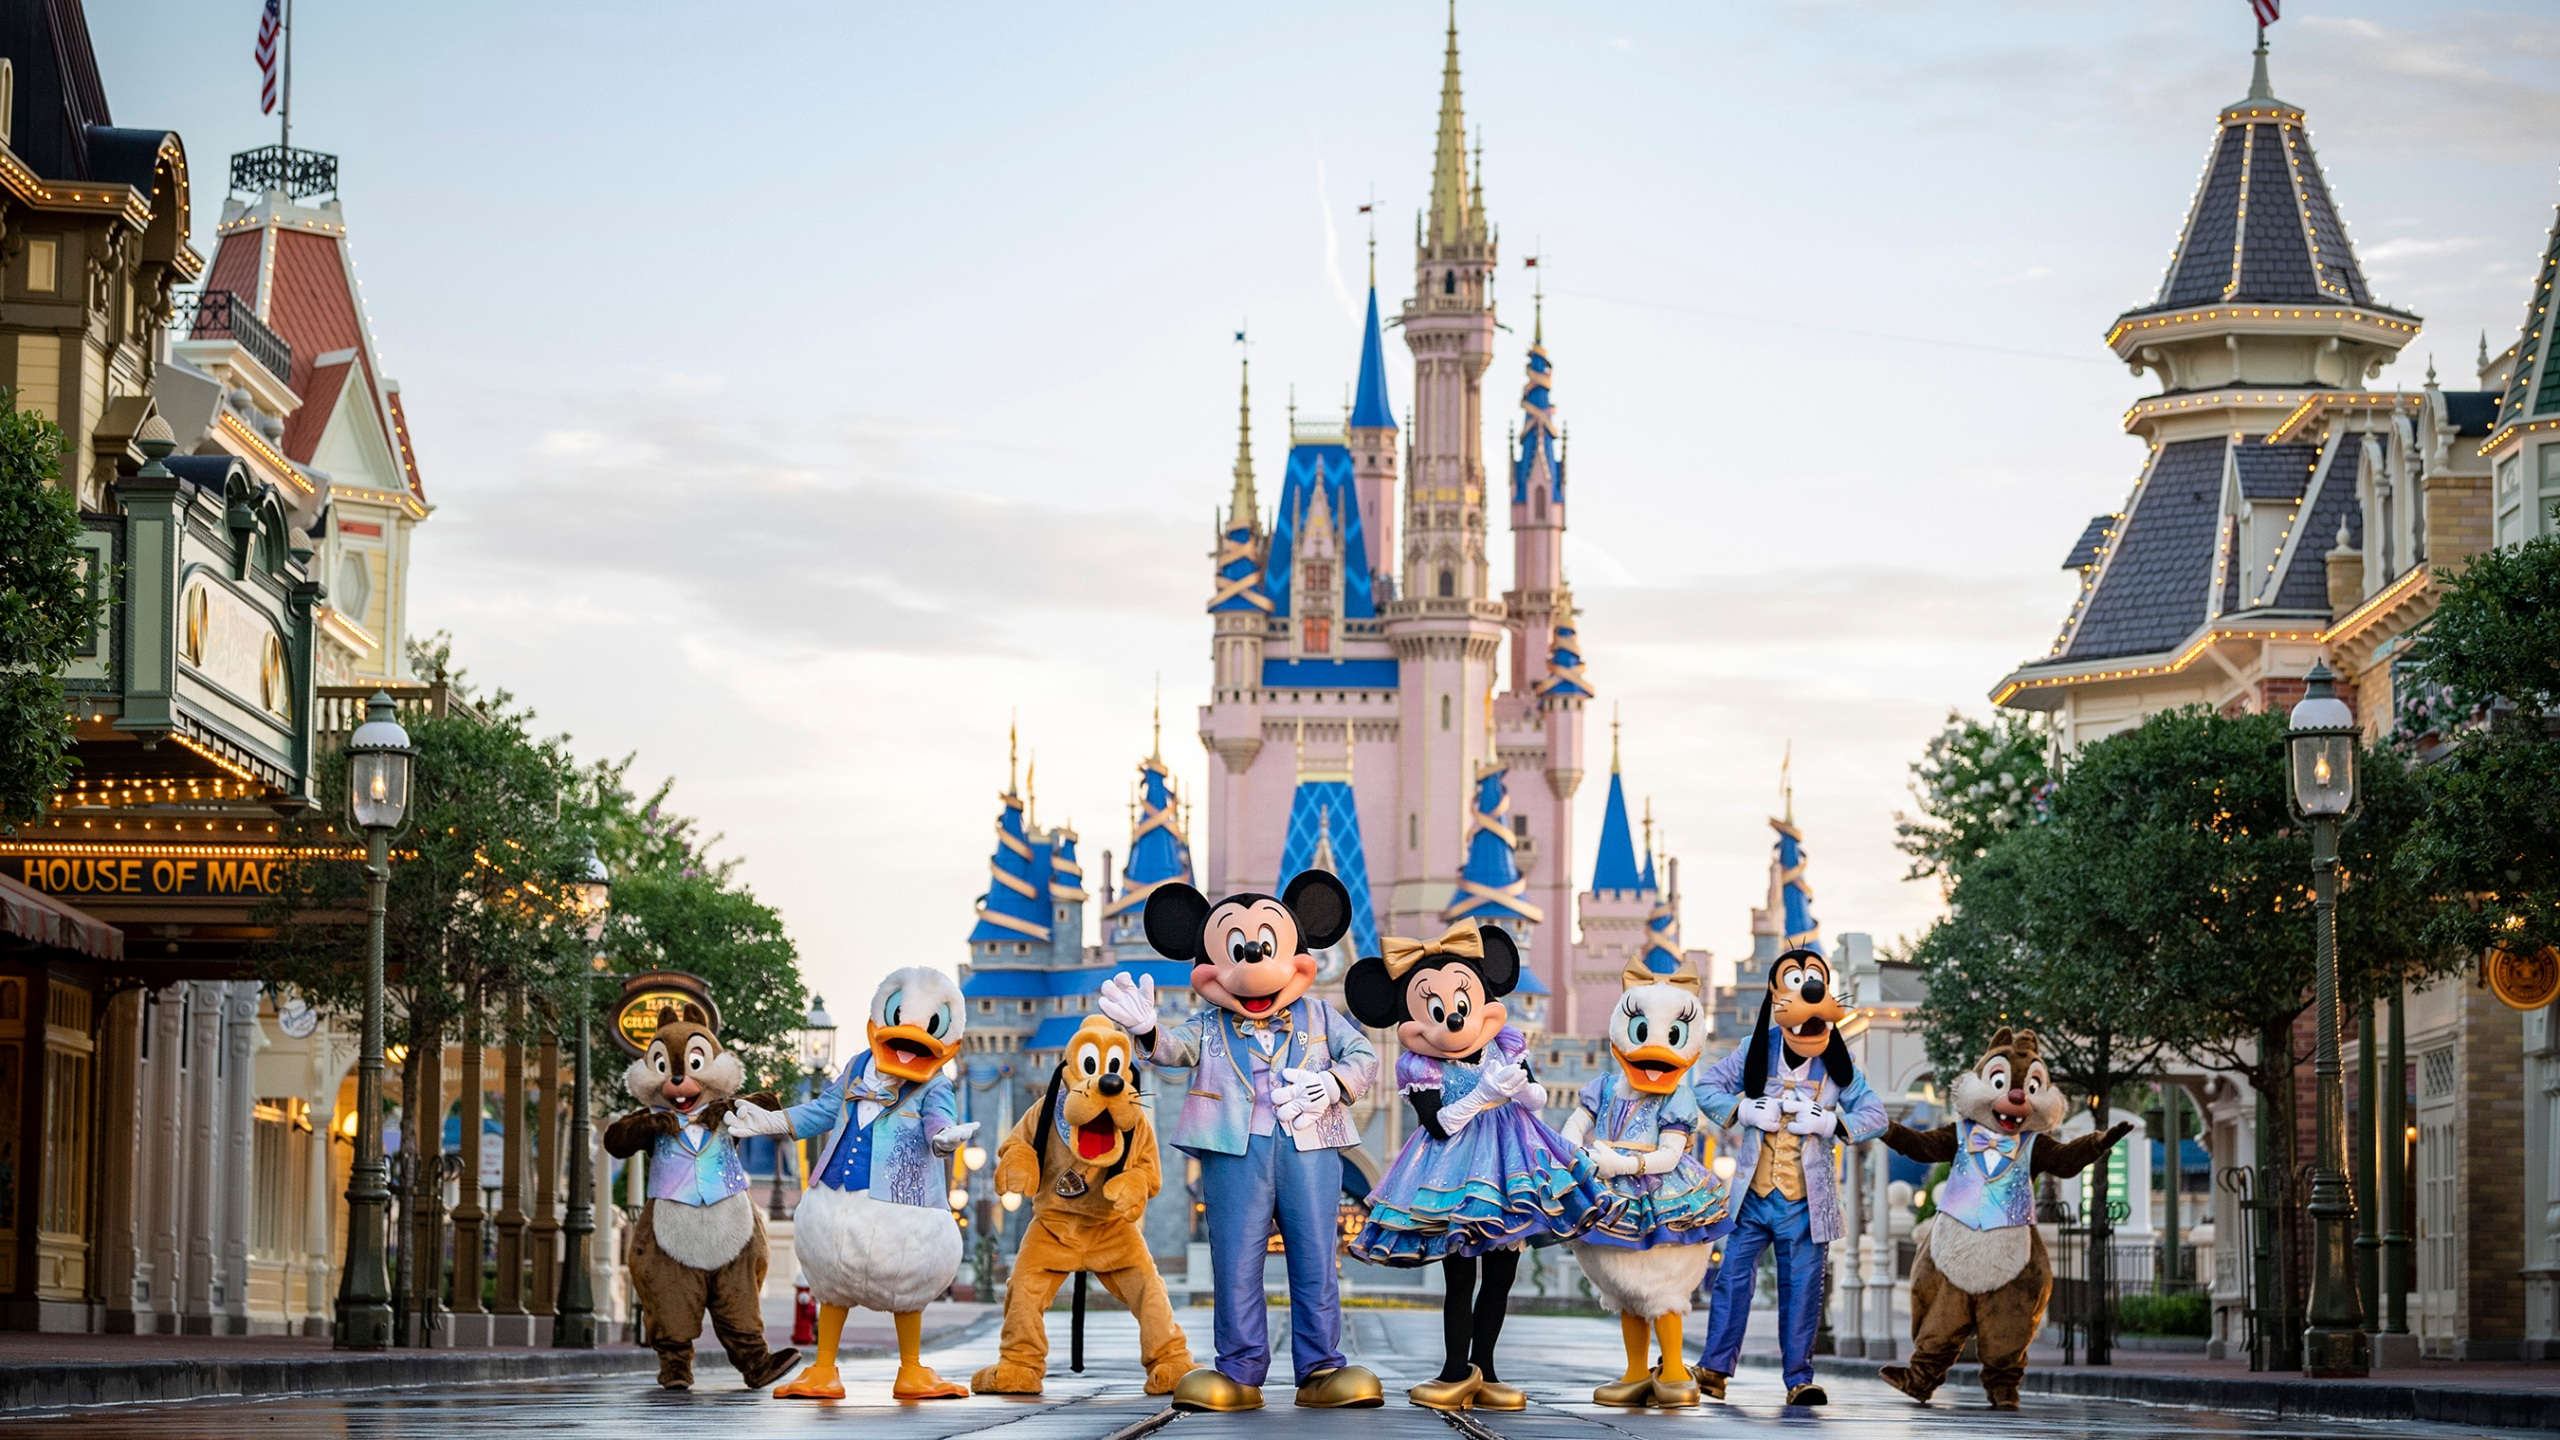 """This undated photo provided by Walt Disney World shows Disney characters at Walt Disney World in Lake Buena Vista, Fla. Walt Disney World is planning an 18-month celebration in honor of its 50th anniversary, starting in October 2021. Disney announced Tuesday, June 22 that all four parks at the resort will take part in """"The World's Most Magical Celebration."""" (Matt Stroshane/Walt Disney World via AP)"""